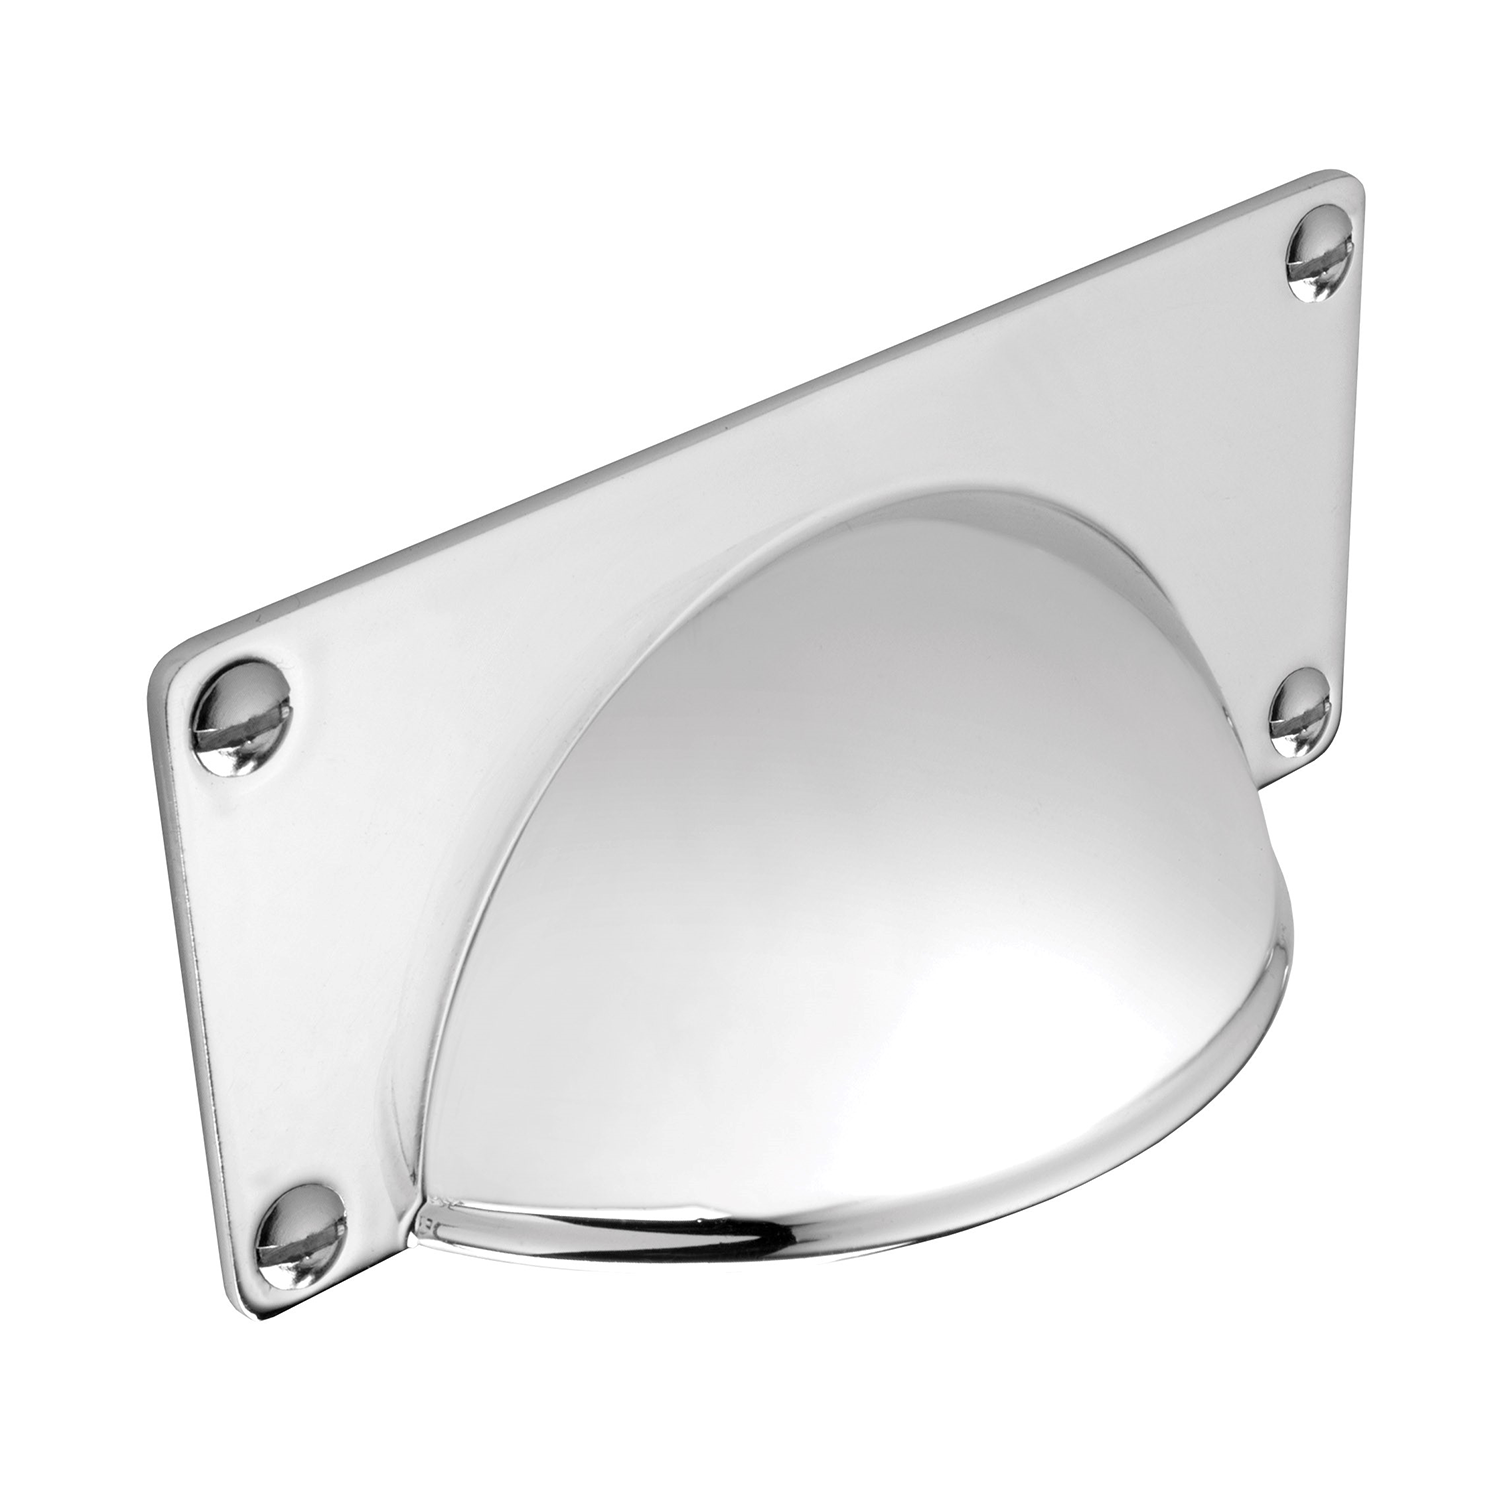 H1079.32.BN Classic Cup Handle With Backplate Solid Brass Nickel Finish